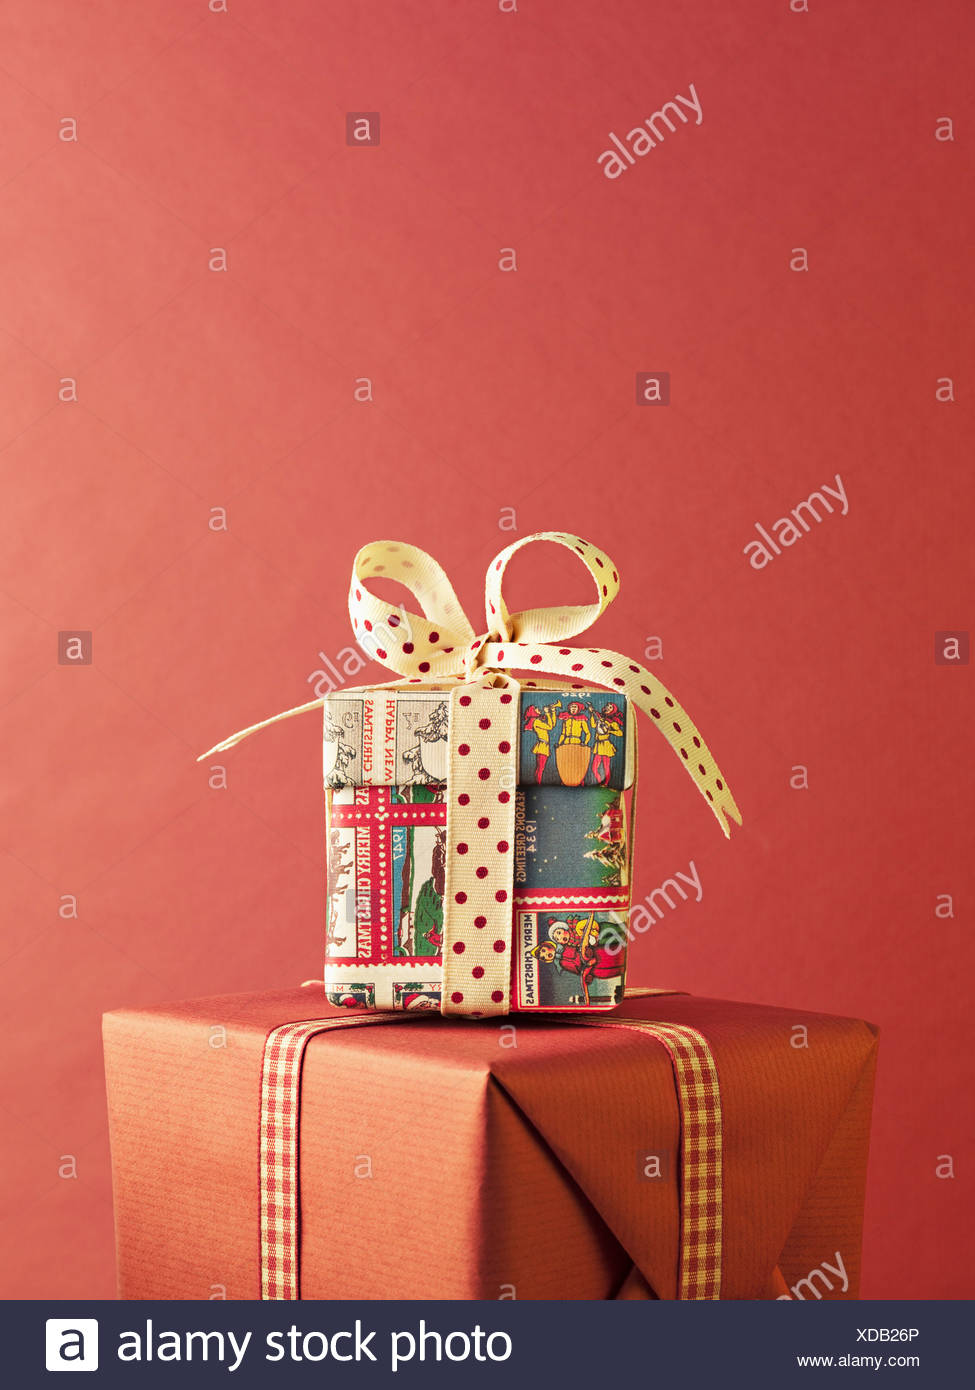 Stack of Christmas gifts Stock Photo: 283599646 - Alamy